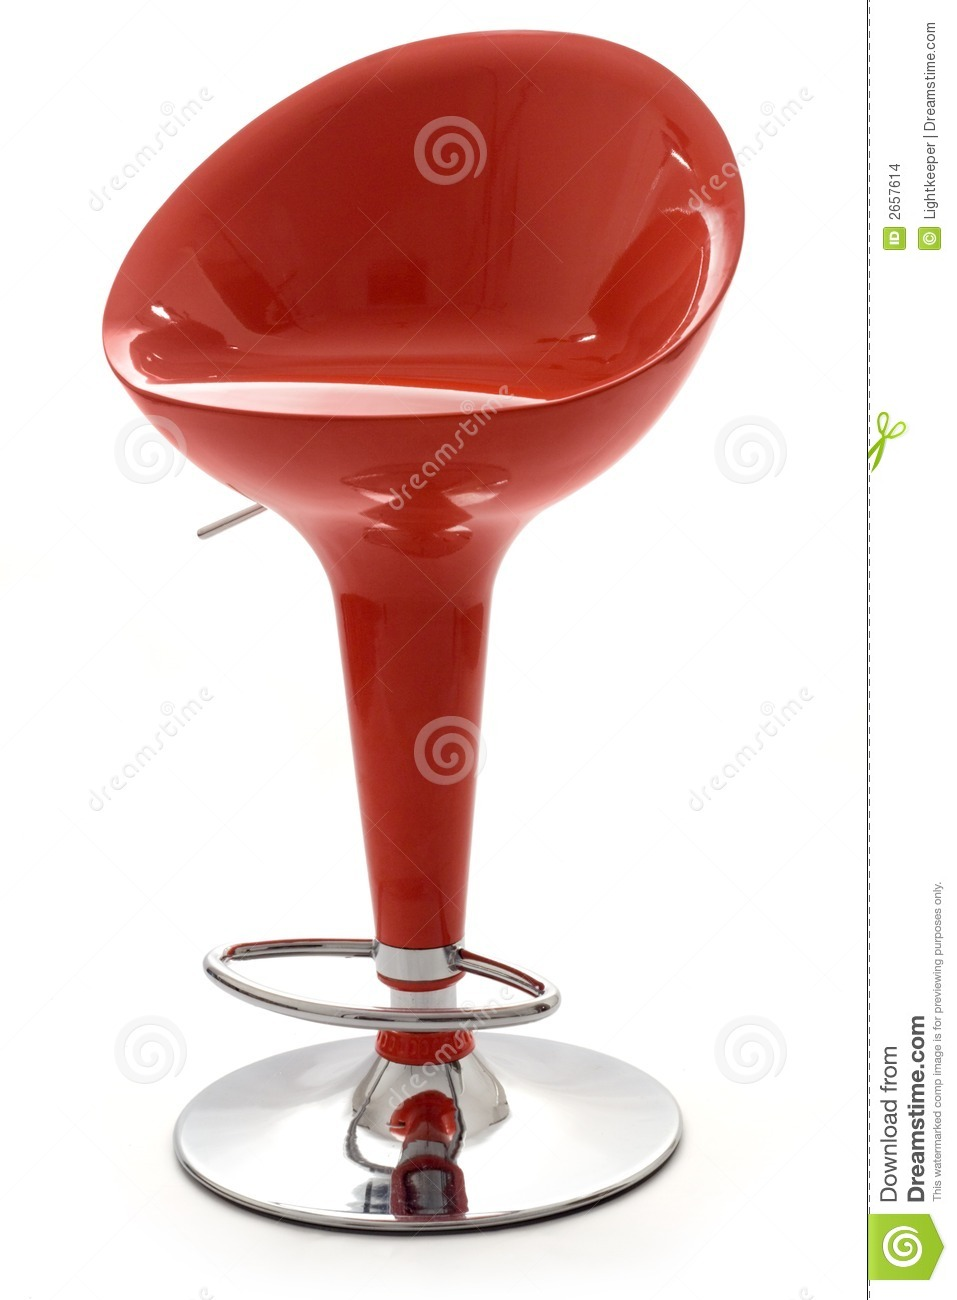 stylish high chair aeron spare parts uk red bar stool stock images - image: 2657614